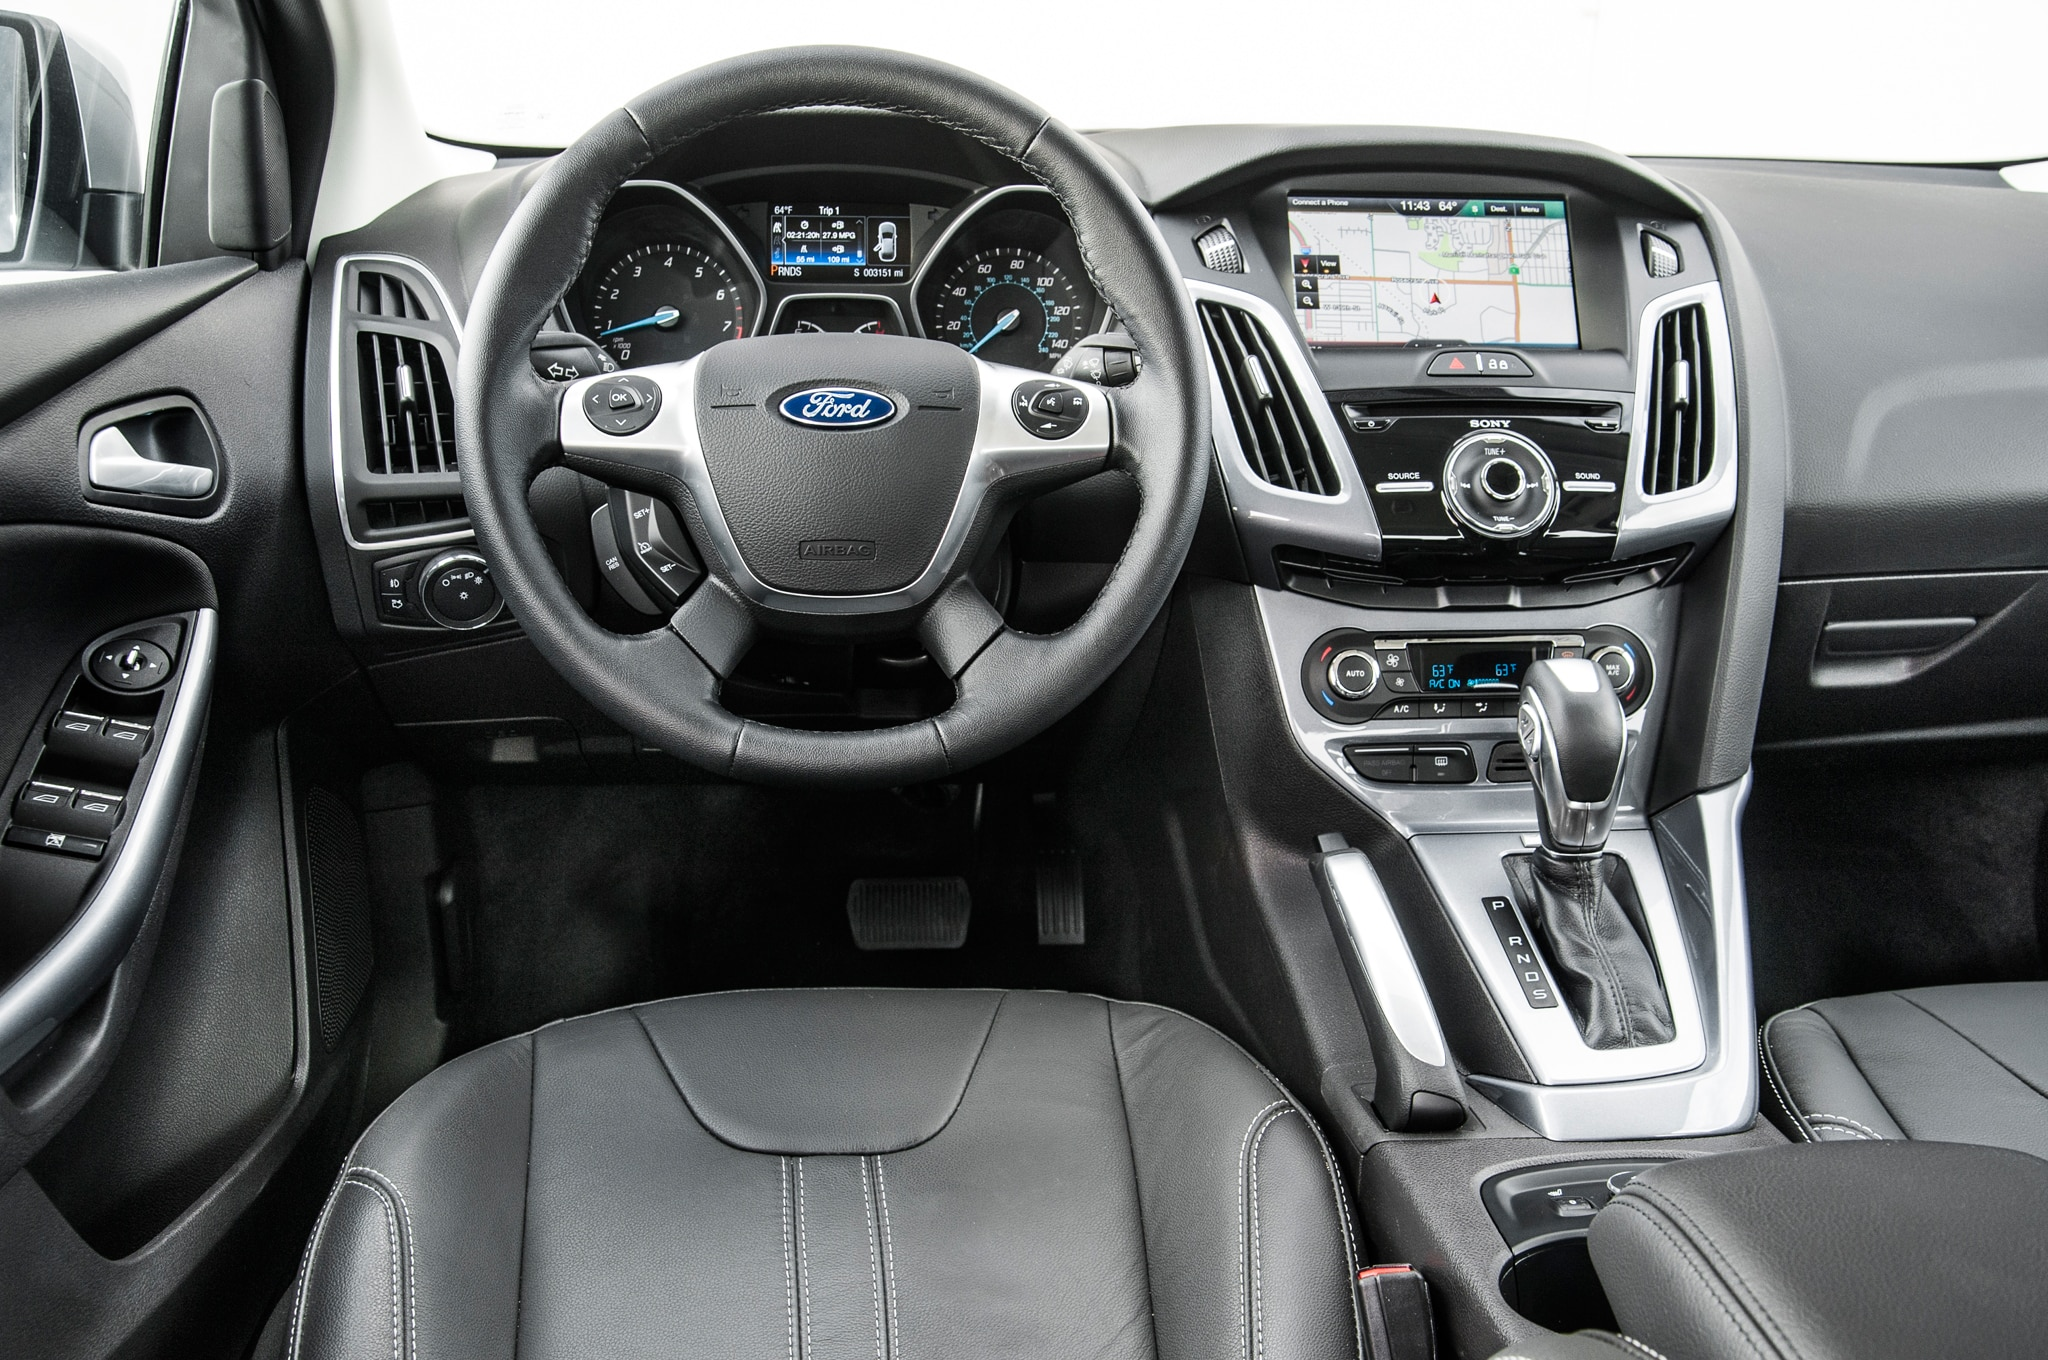 ford focus titanium 2014 primera prueba autos terra motor trend. Black Bedroom Furniture Sets. Home Design Ideas